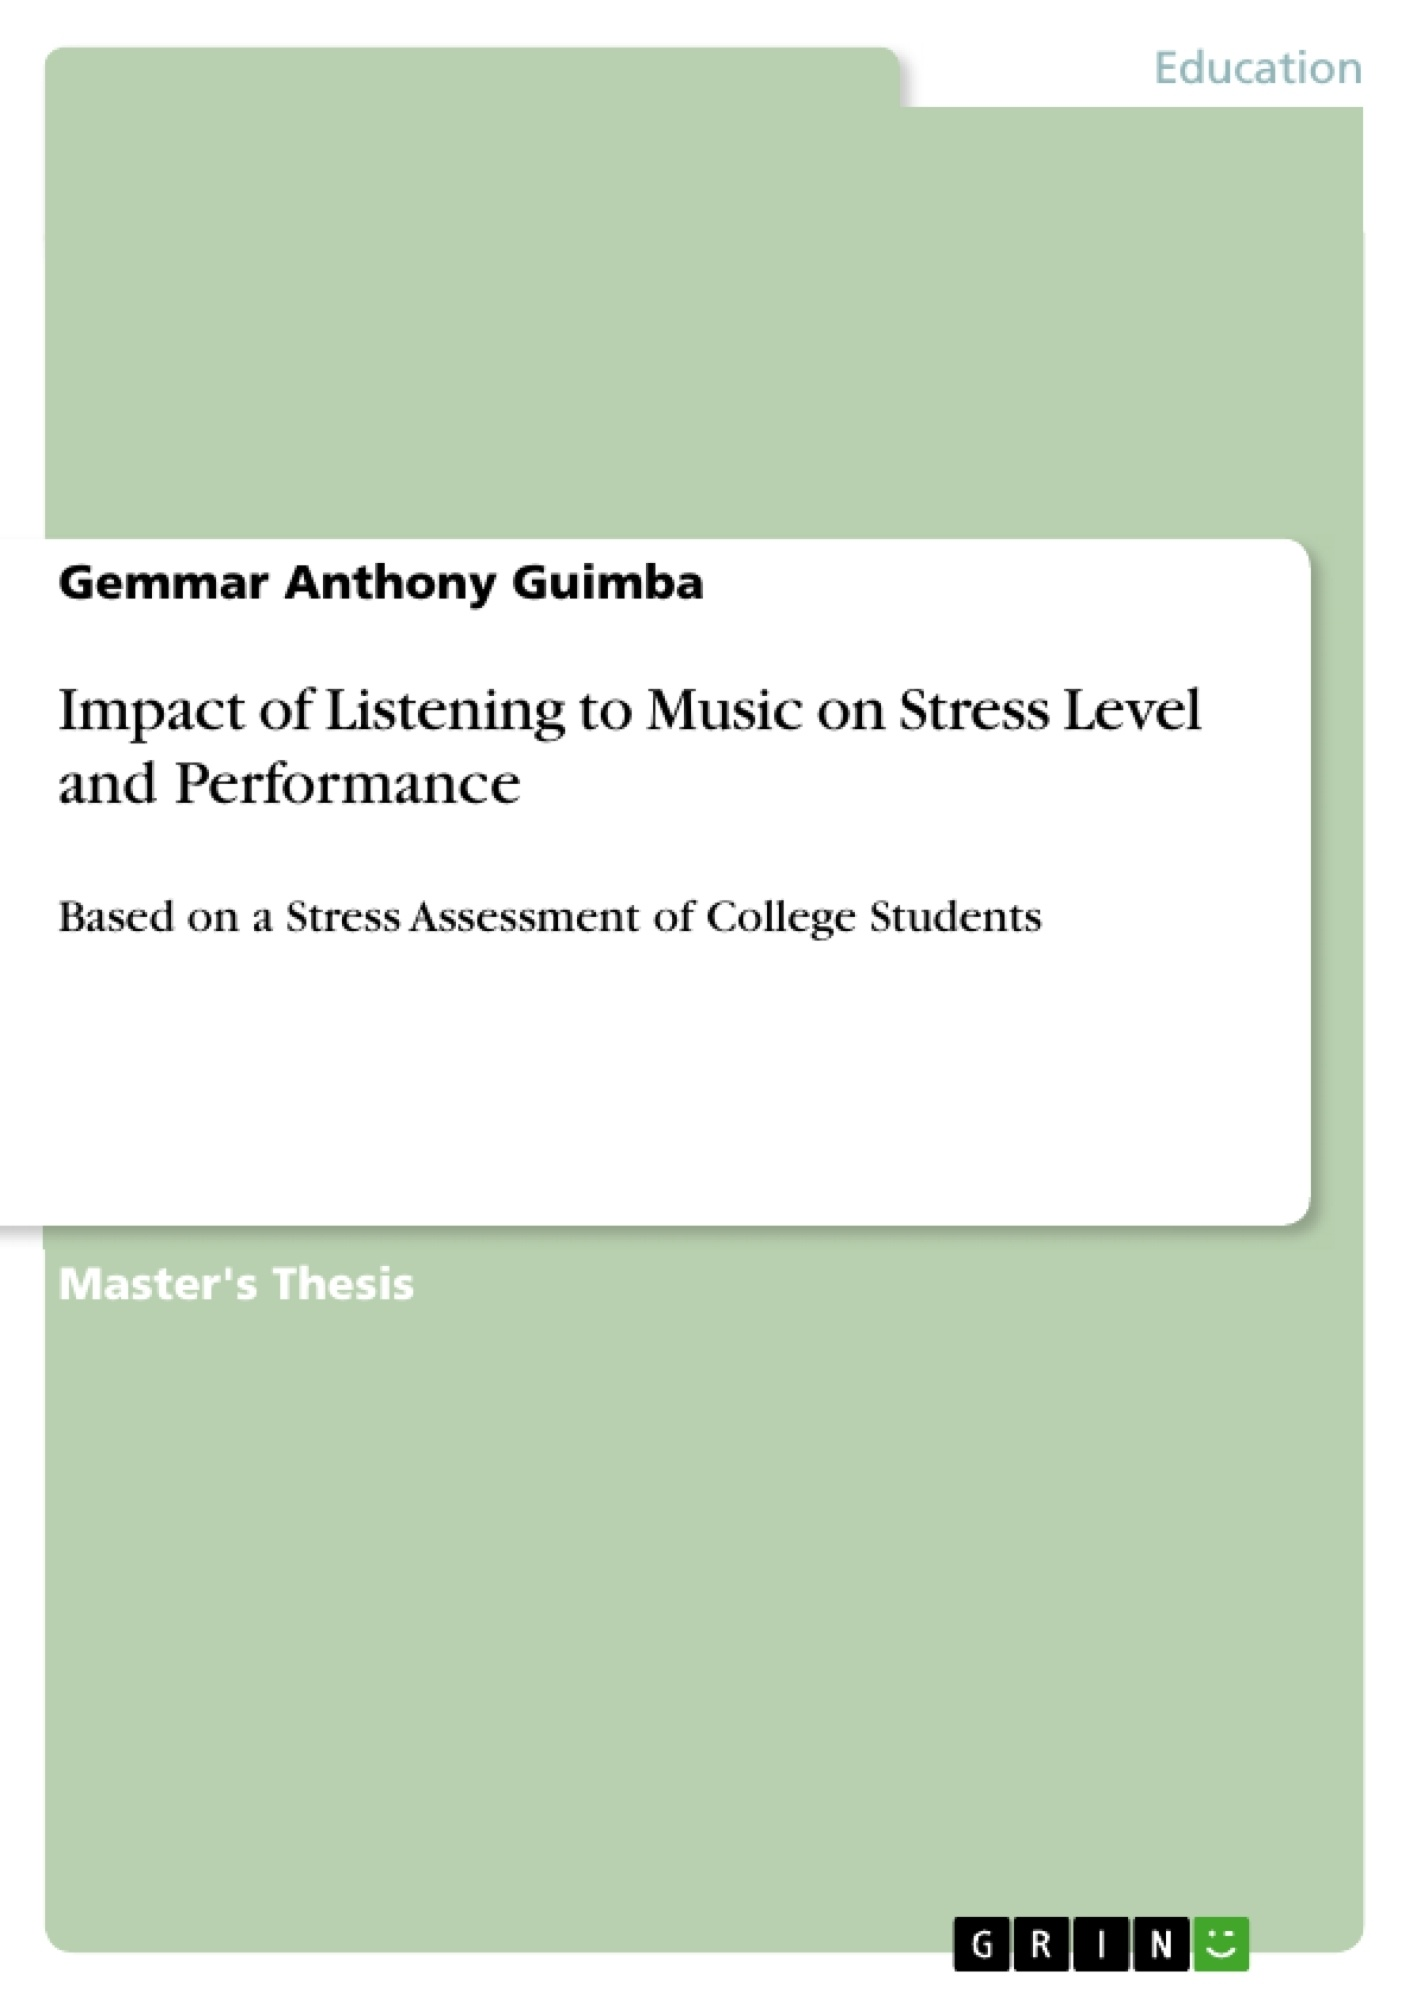 Title: Impact of Listening to Music on Stress Level and Performance